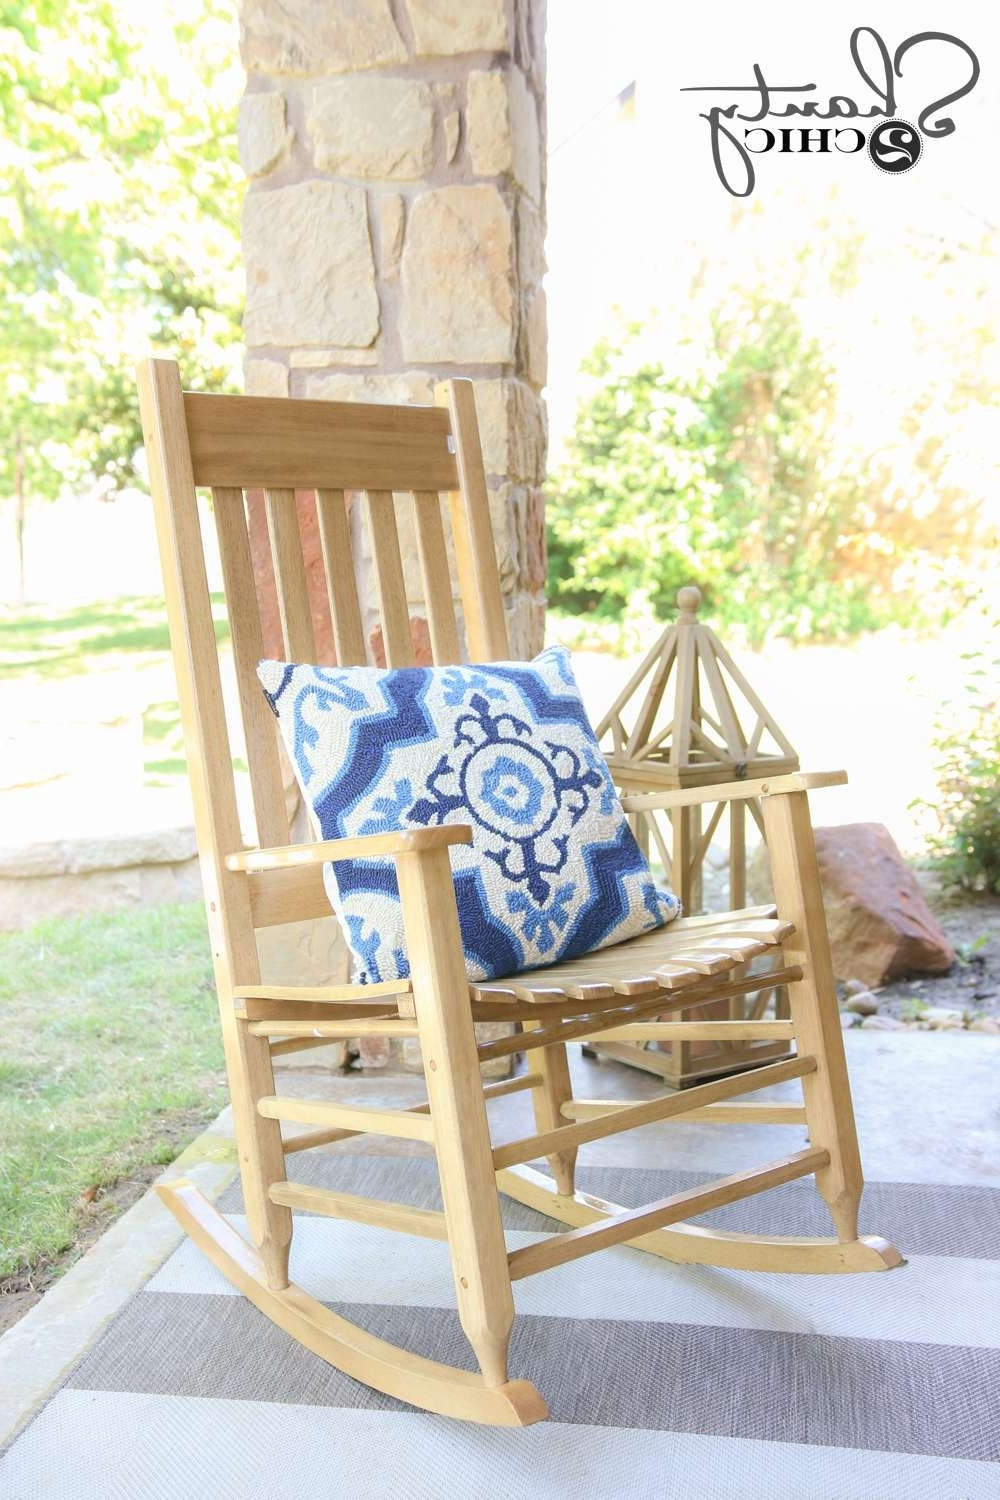 Wayfair Rocking Chair Luxury Wayfair Back Patio Makeover Shanty 2 Intended For Widely Used Rocking Chairs At Wayfair (View 19 of 20)